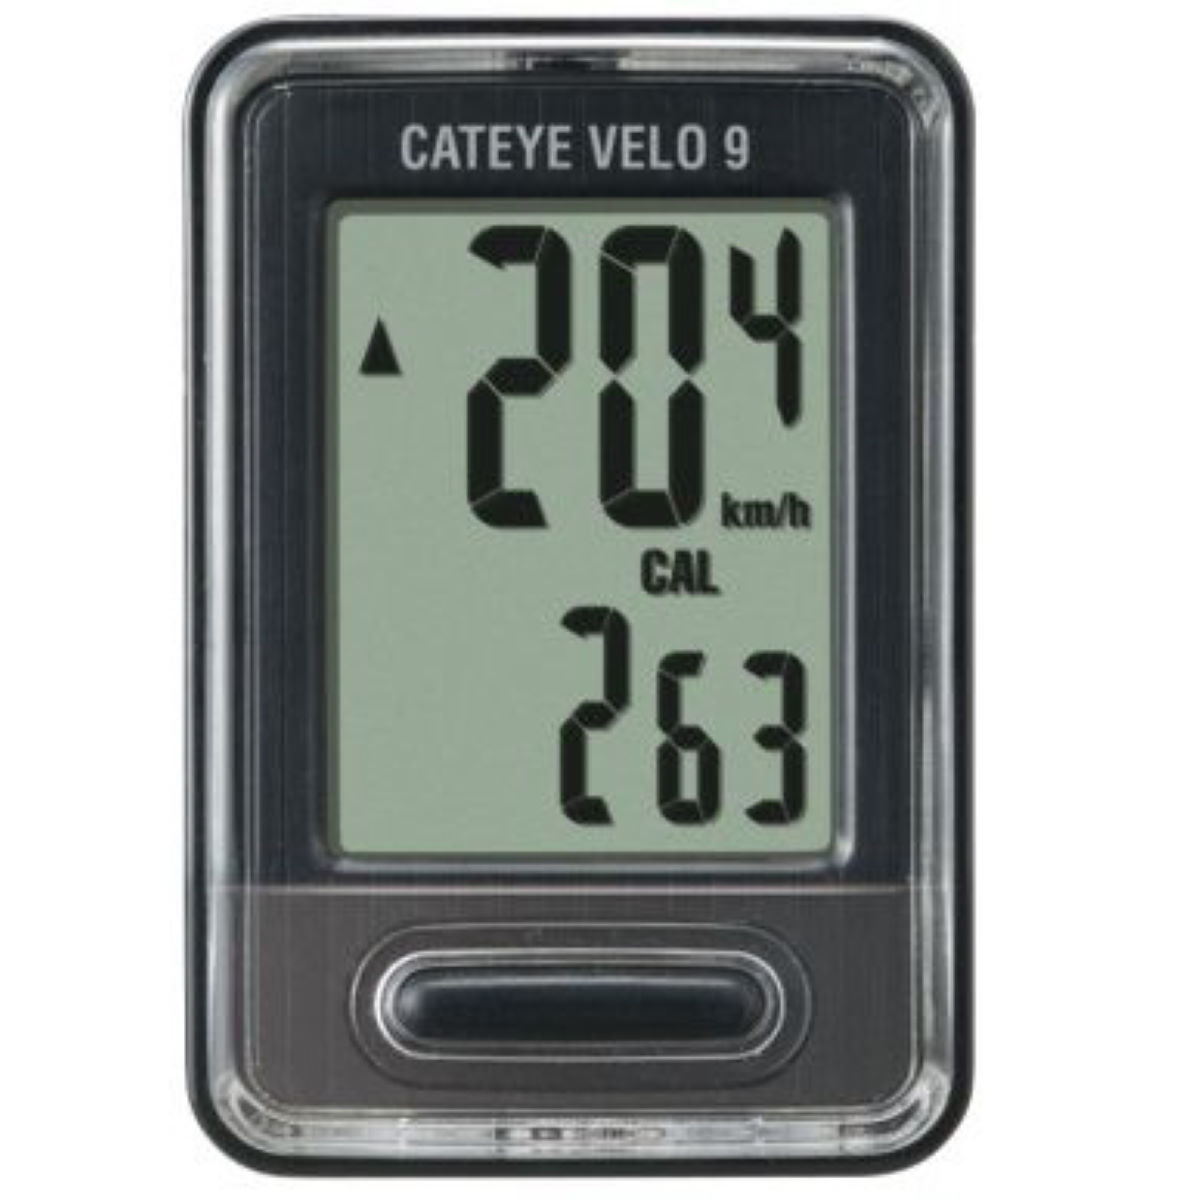 Compteur vélo Cateye Velo 9 Wired - Gris Compteurs